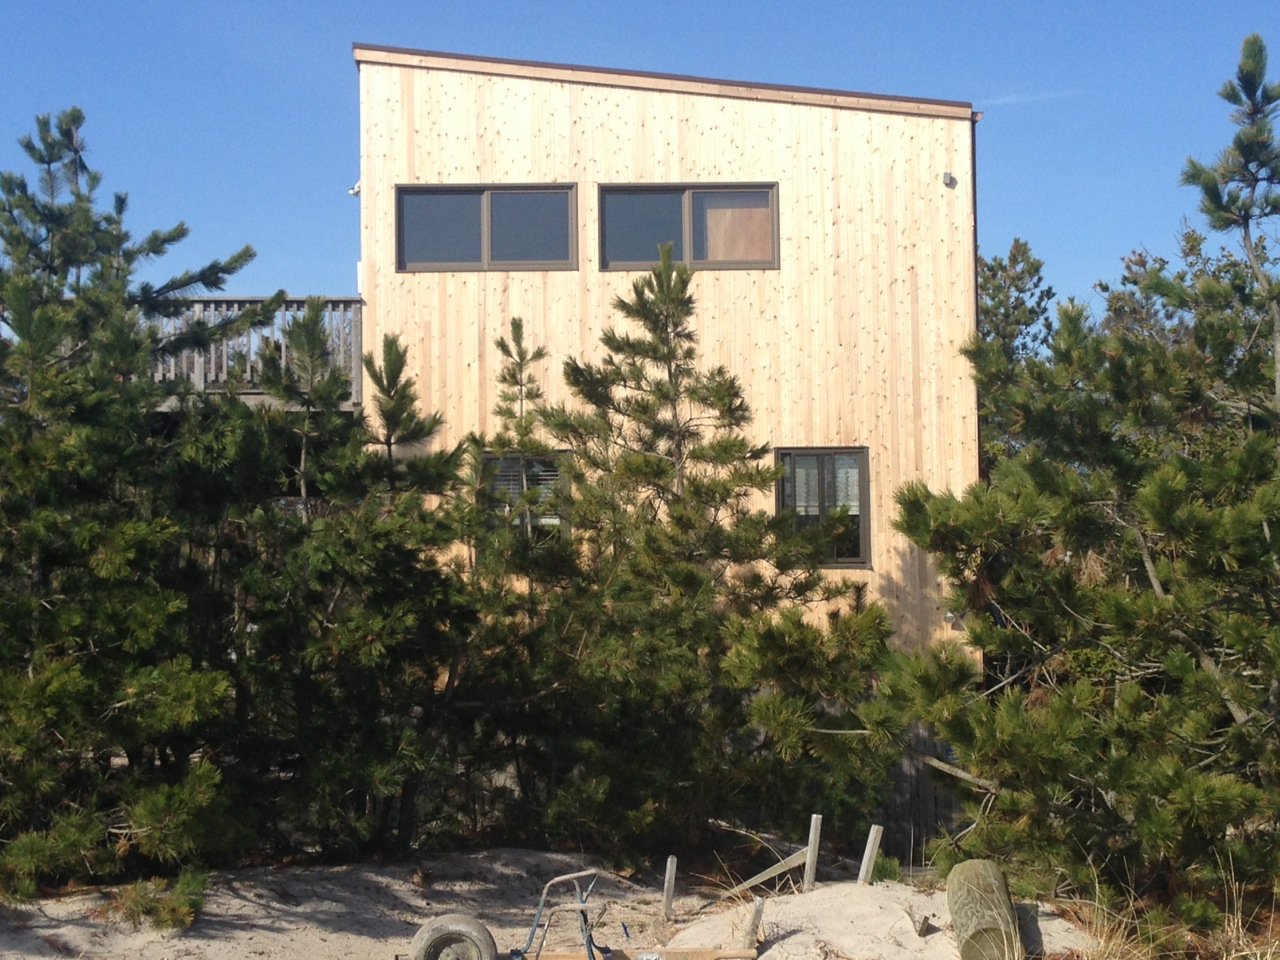 Exclusive Listing.  Quiet location on the western end of Ocean Bay Park. Enjoy phenomenal ocean views from the large open great room that opens out onto a huge second story deck. Plenty of room to gather with the whole family.  Open kitchen, living, and dining area. 2.5 bathrooms means you will never have to wait. Best of all, you're only the 4th house back from the beach!  Must see! <br> Priced to sell at $875,000<br> Current owner's flood insurance: $2,892<br> Current owner's fire insurance: $1,140